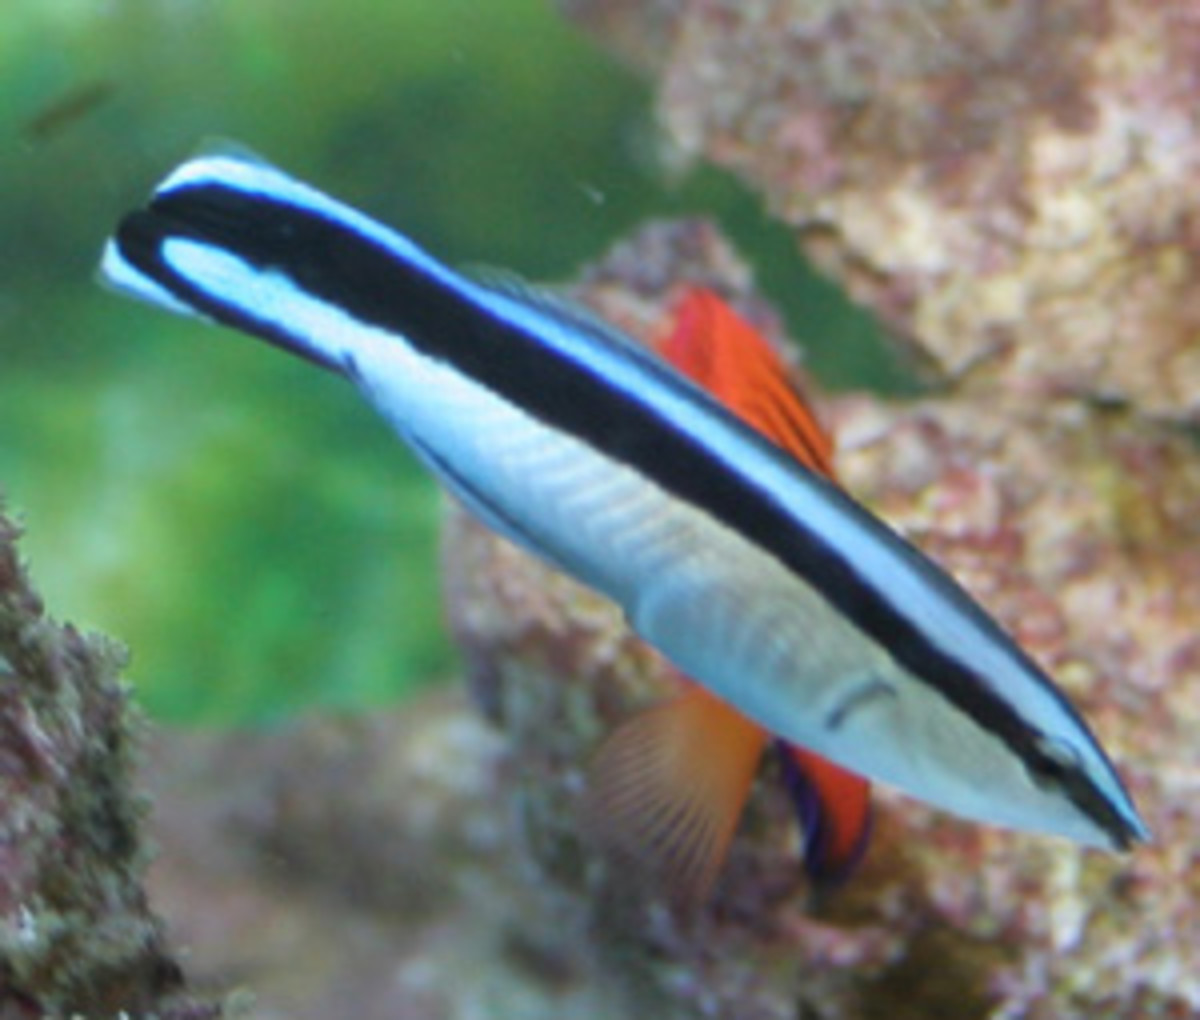 Cleaner Wrasse - Facts On The Cleaner Wrasse